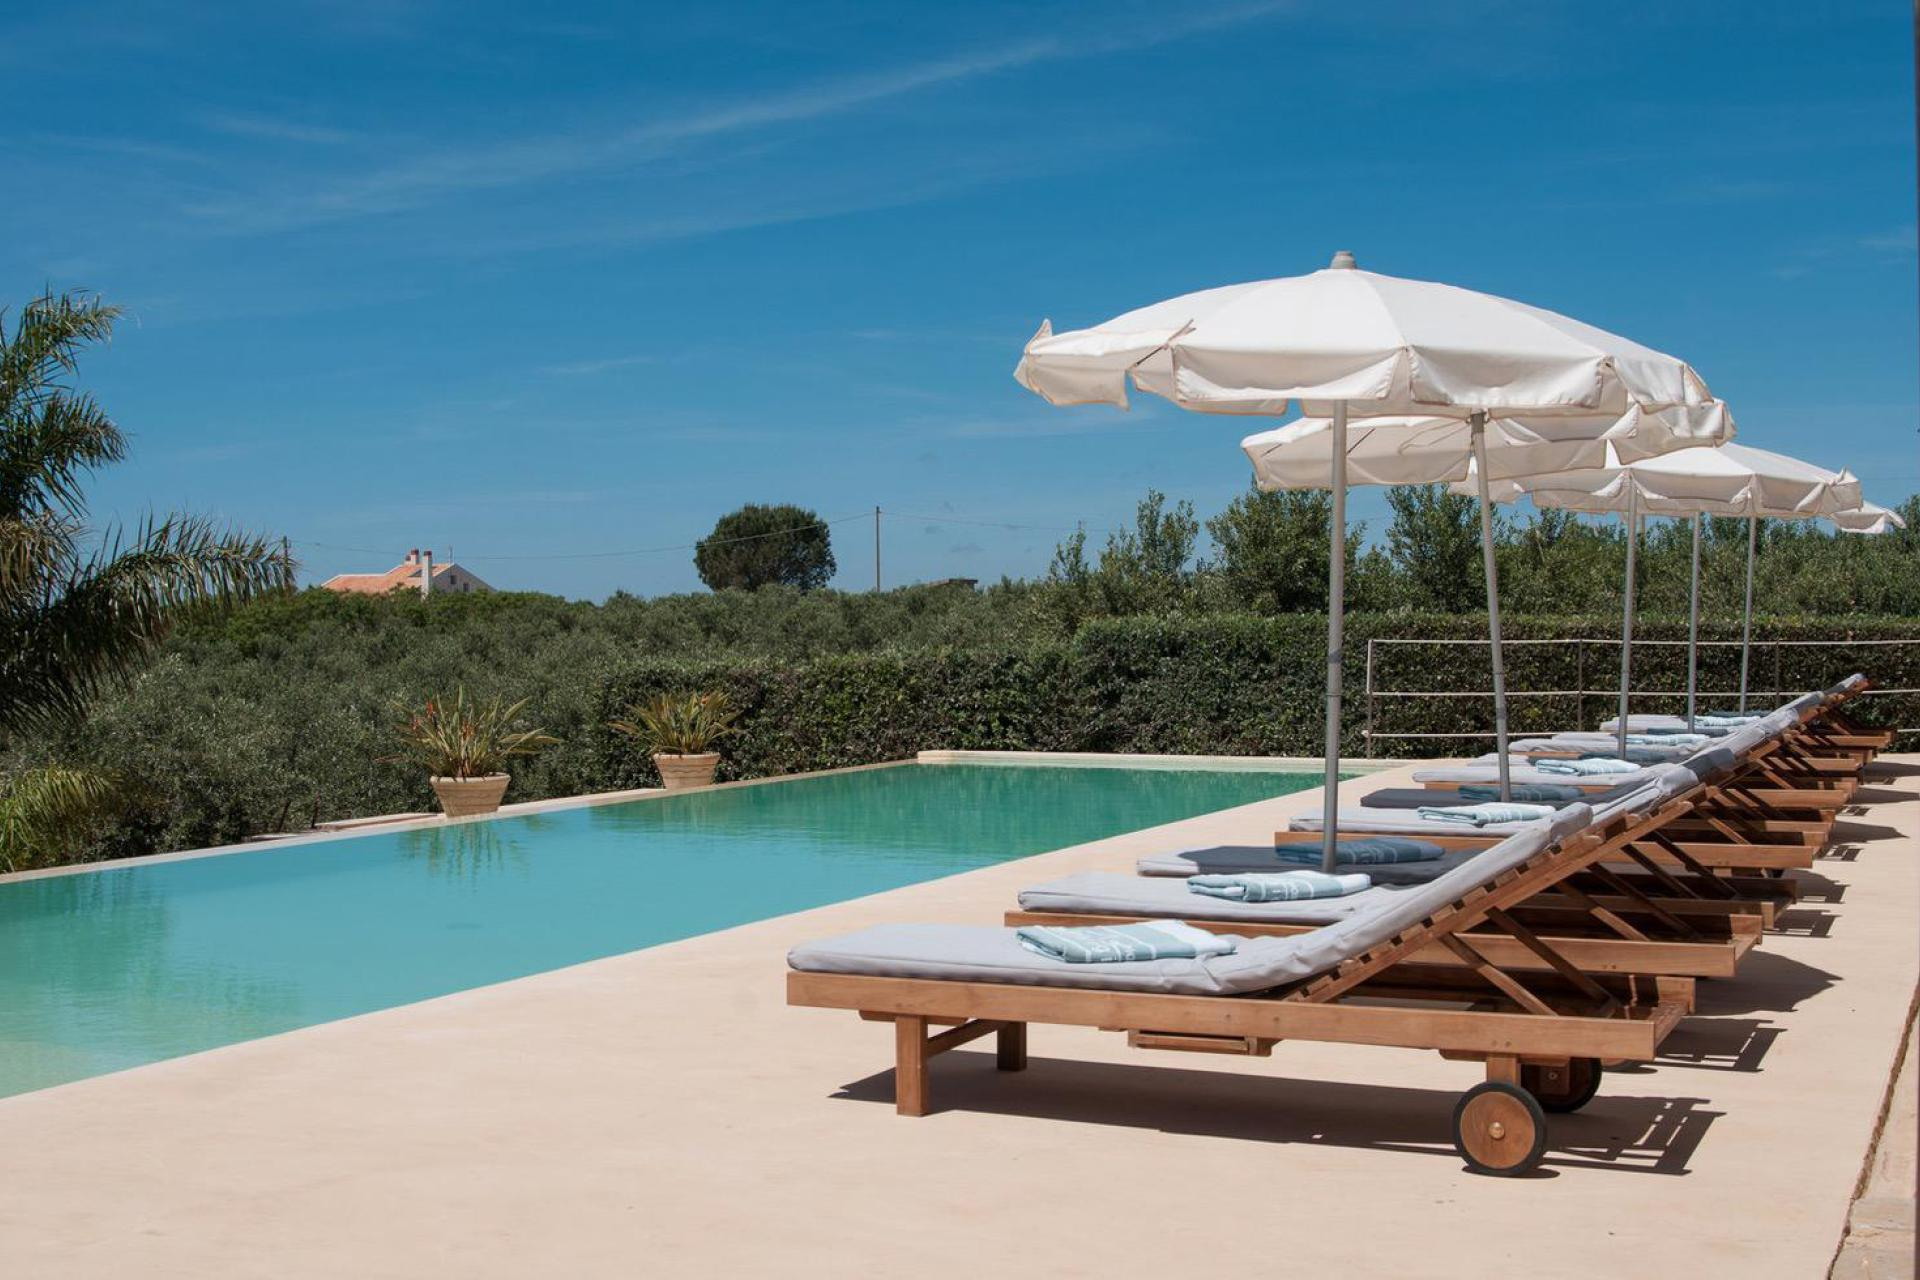 Agriturismo Sicily Cozy agriturismo with restaurant in Sicily, close to the sea